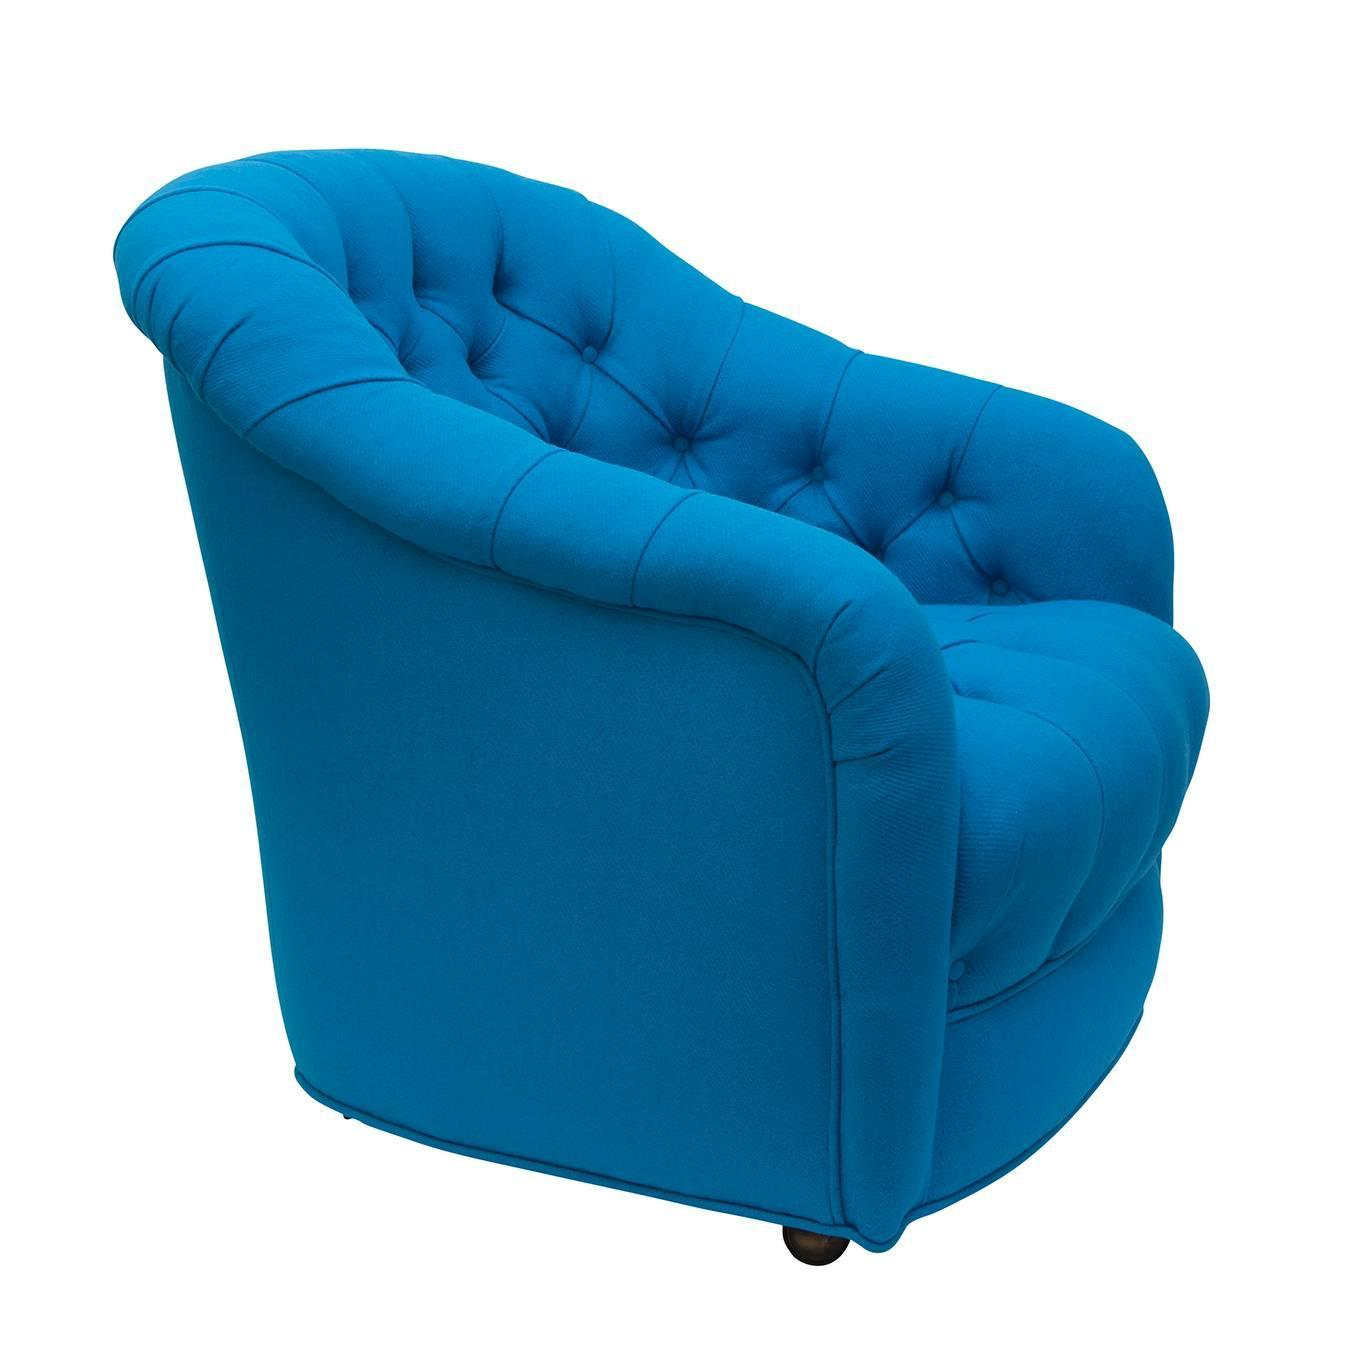 Turquoise Side Chair Tufted Swivel Side Chairs In Turquoise Wool Pair For Sale